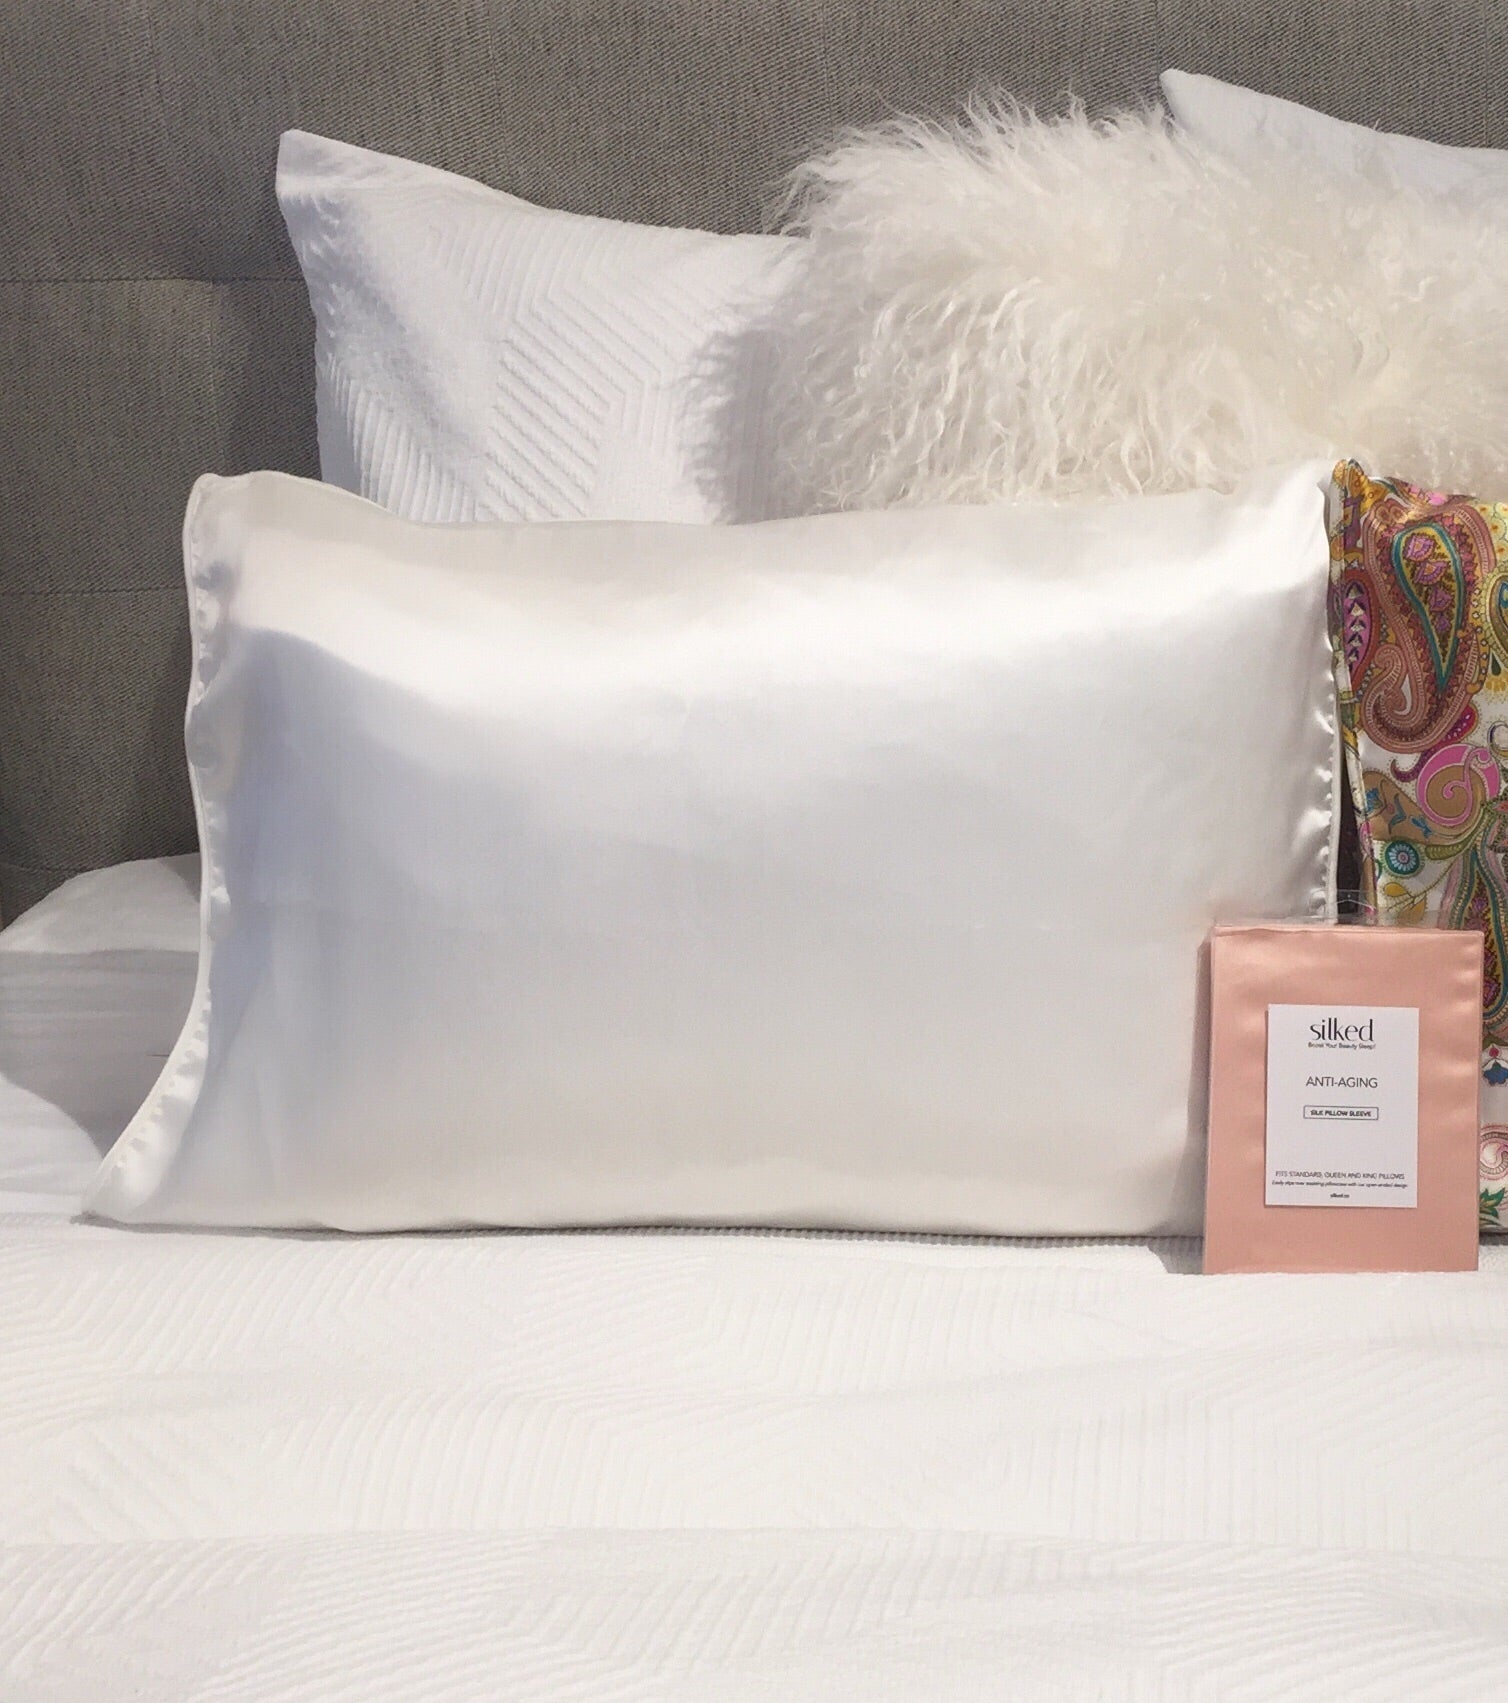 Silked Silk Pillowcase Pillow Sleeve 100% Silk #1 Best Seller Made in USA Hotel Travel Beauty Product Antibacterial Hypoallergenic